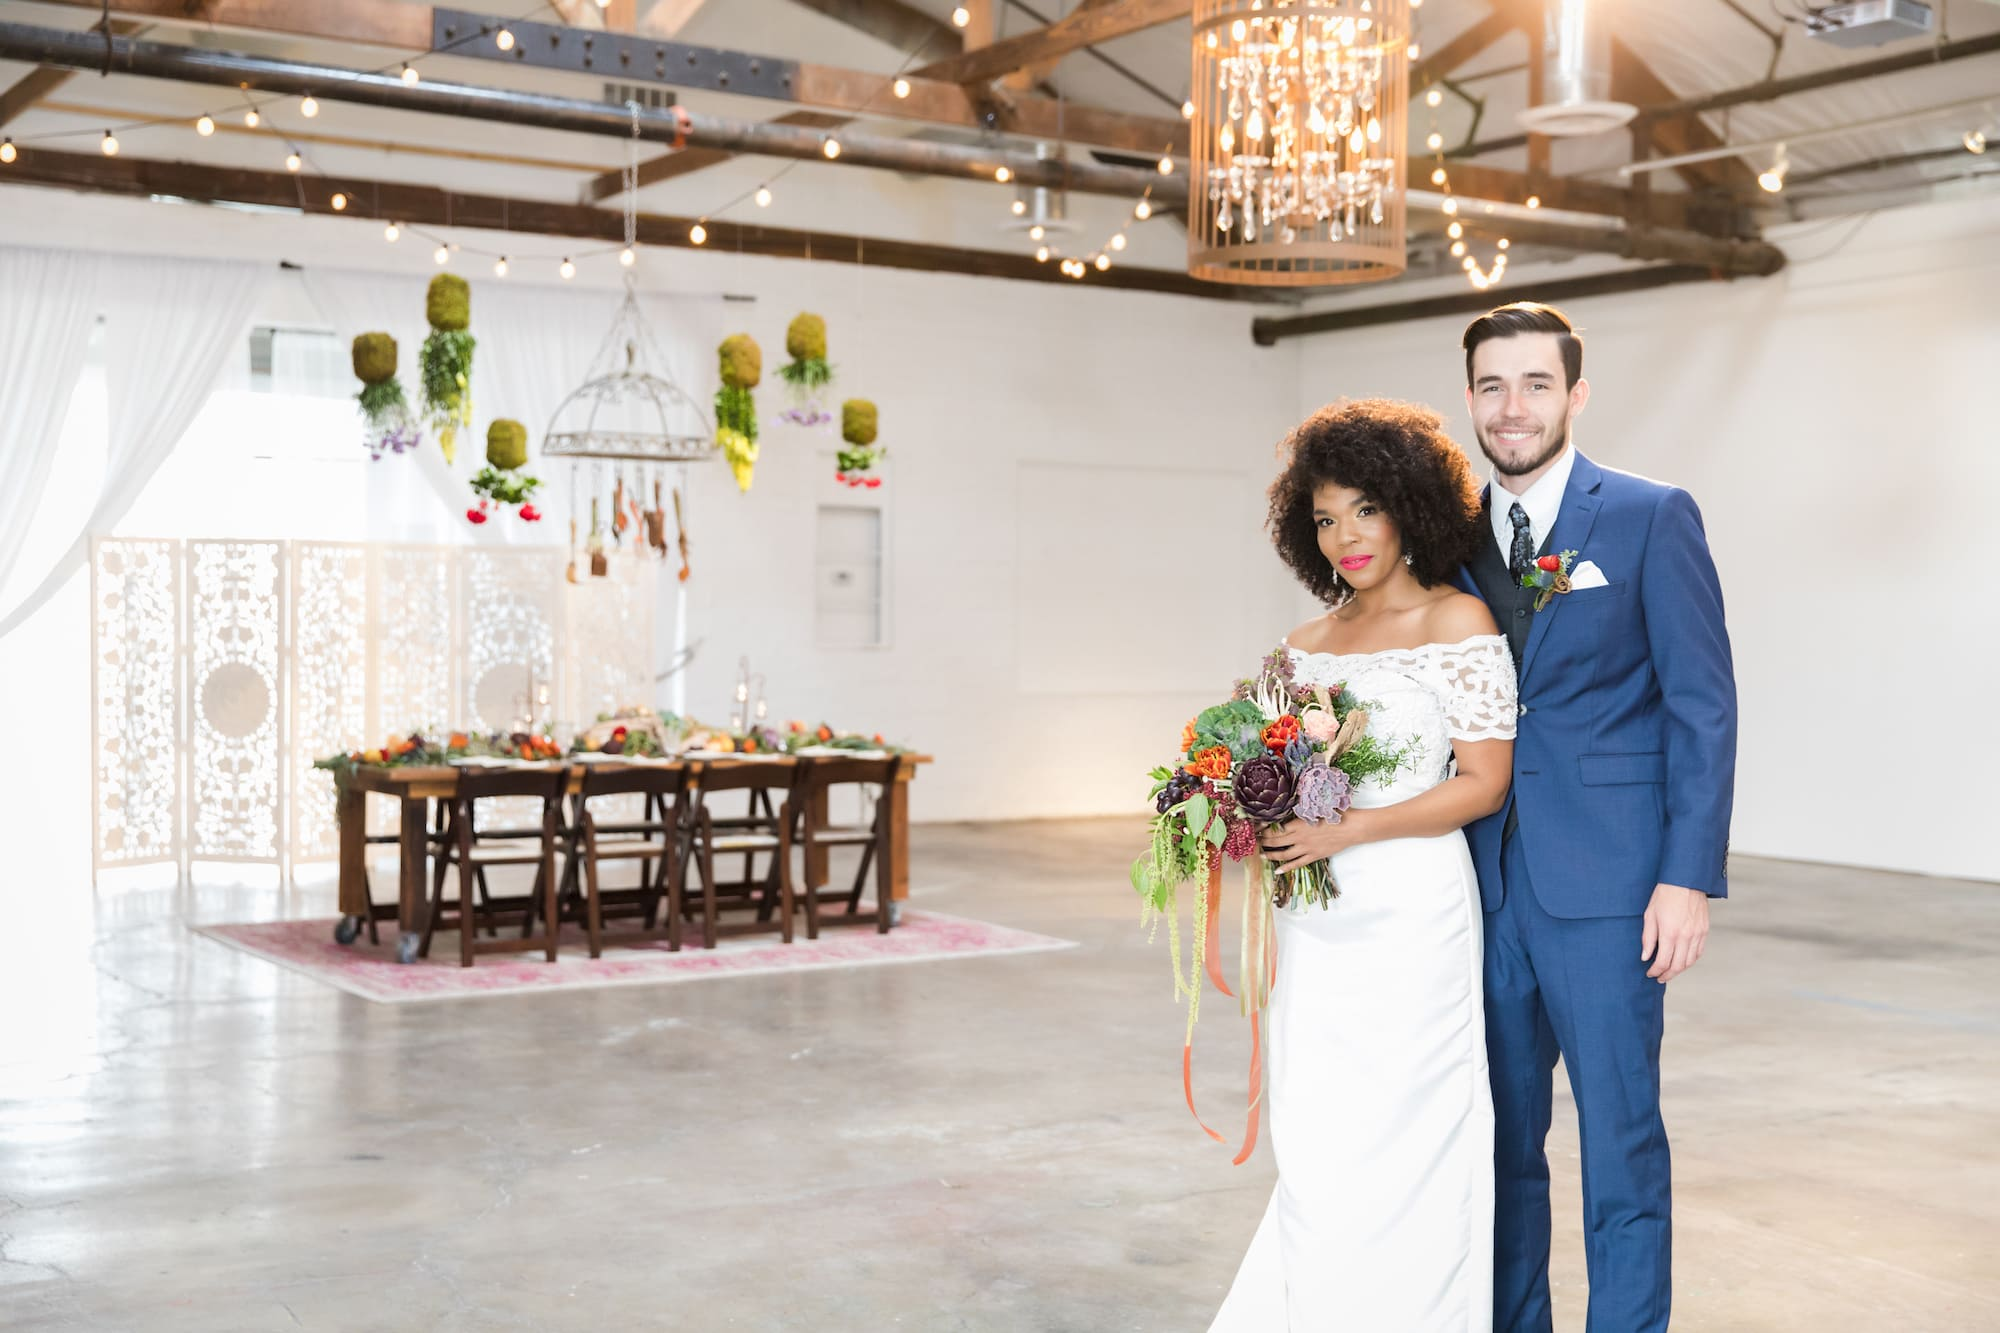 9 Tips For Planning A Sustainable, Earth-Friendly Wedding - photo and article courtesy of Cactus Collective Weddings